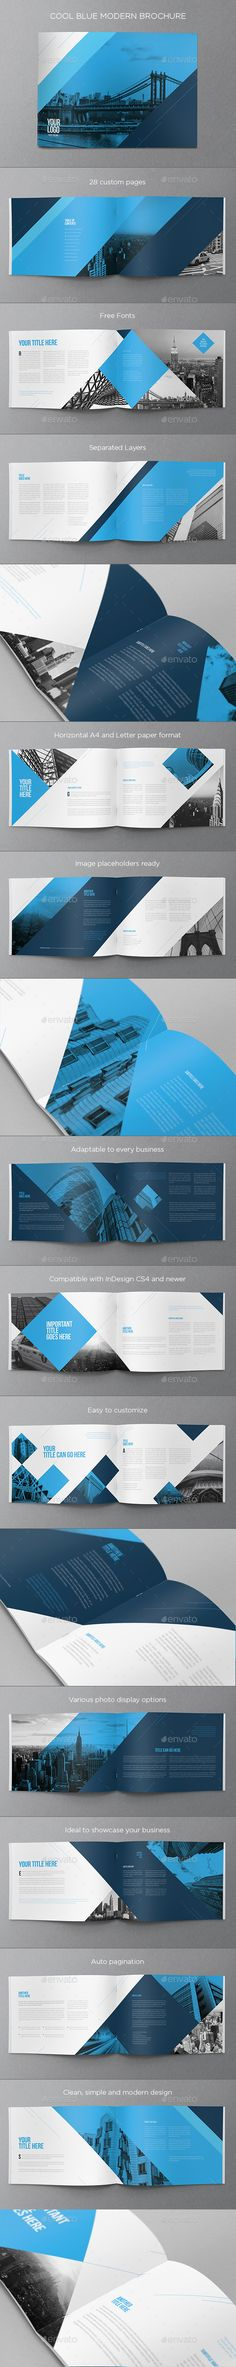 Cool Blue Modern Brochure — InDesign INDD #blue #cool • Available here → https://graphicriver.net/item/cool-blue-modern-brochure/14618896?ref=pxcr